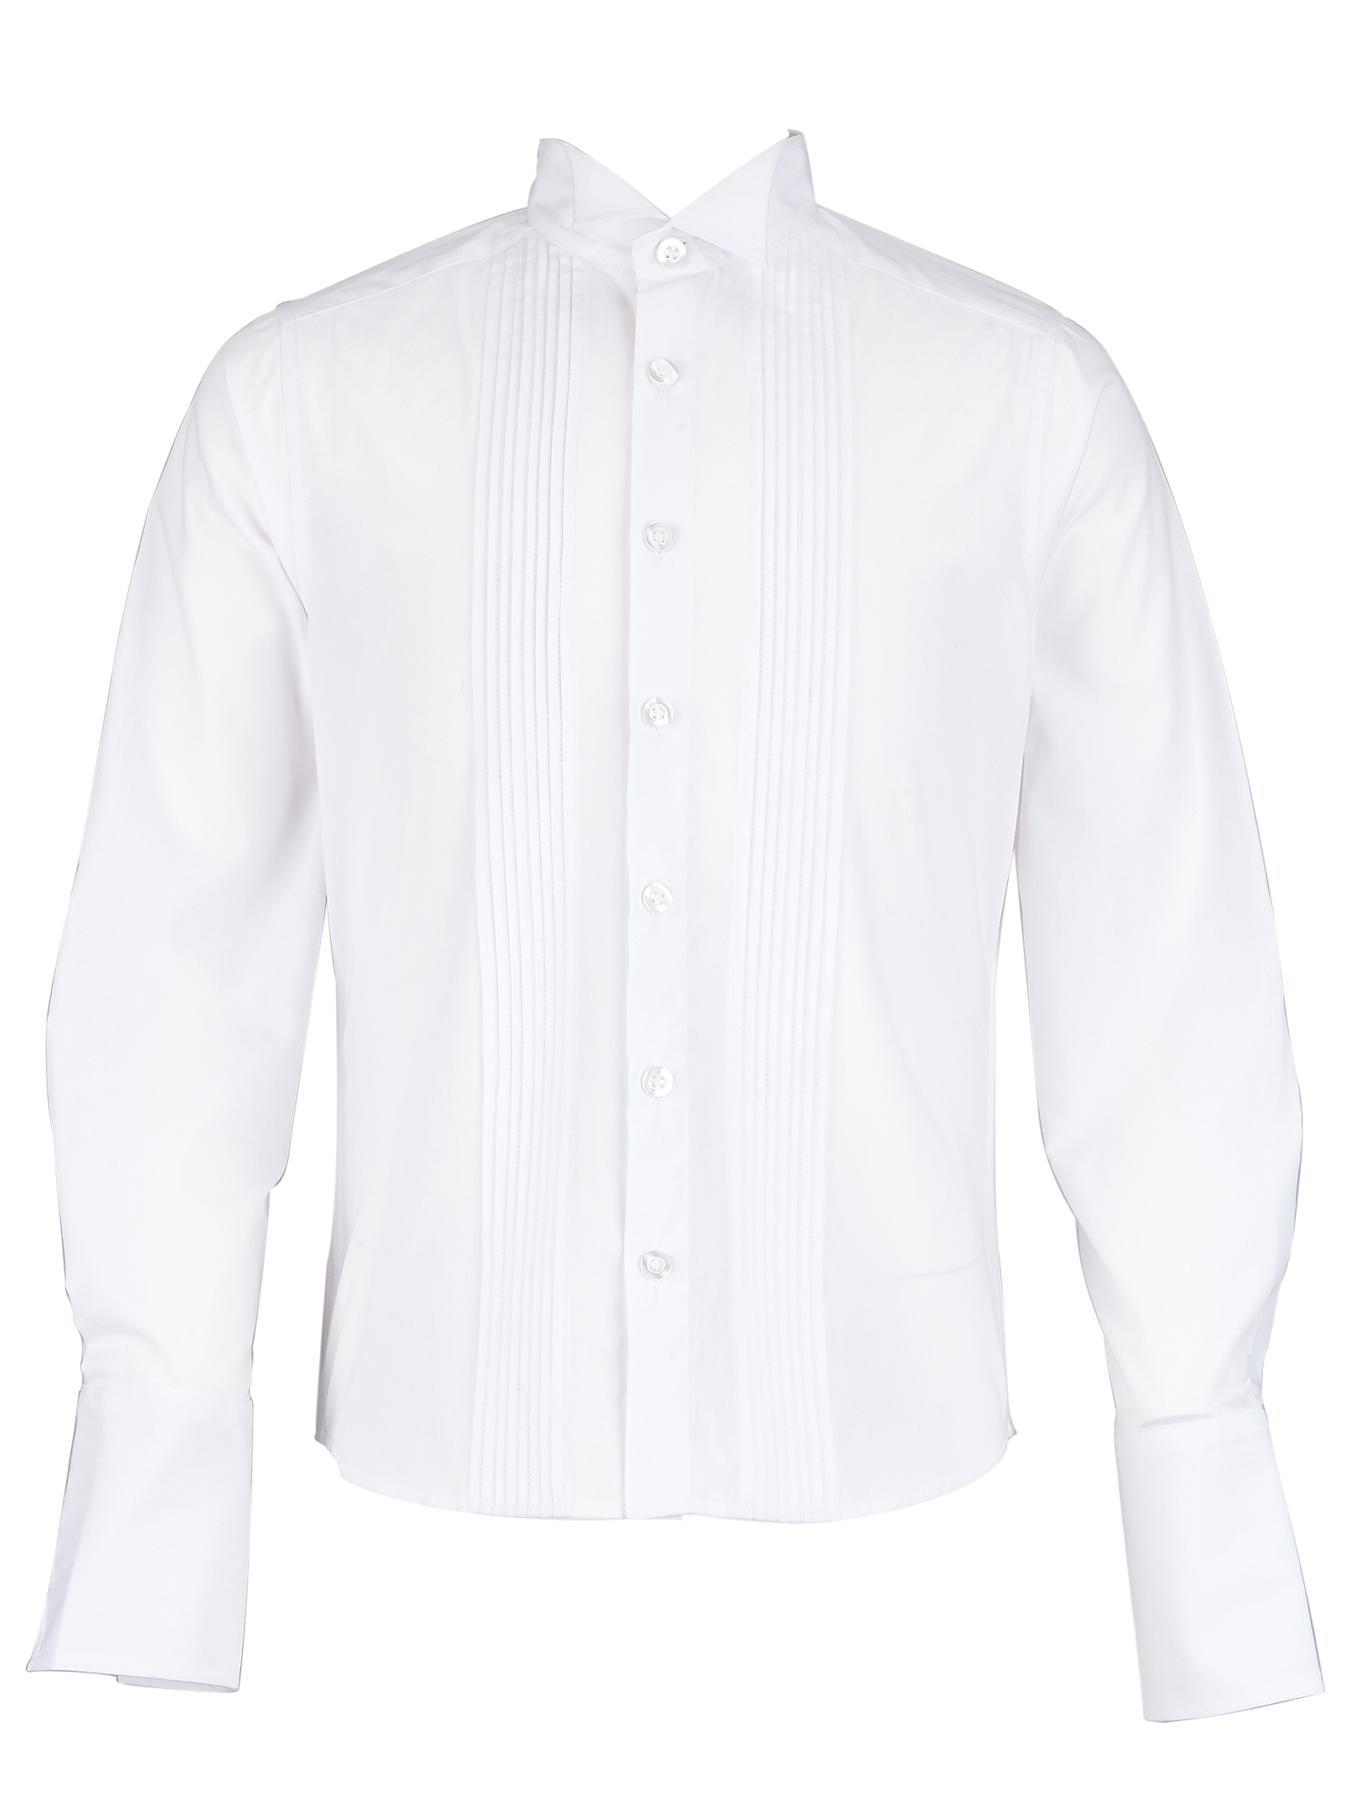 Demo Boys Smart Pintuck Shirt - White, White